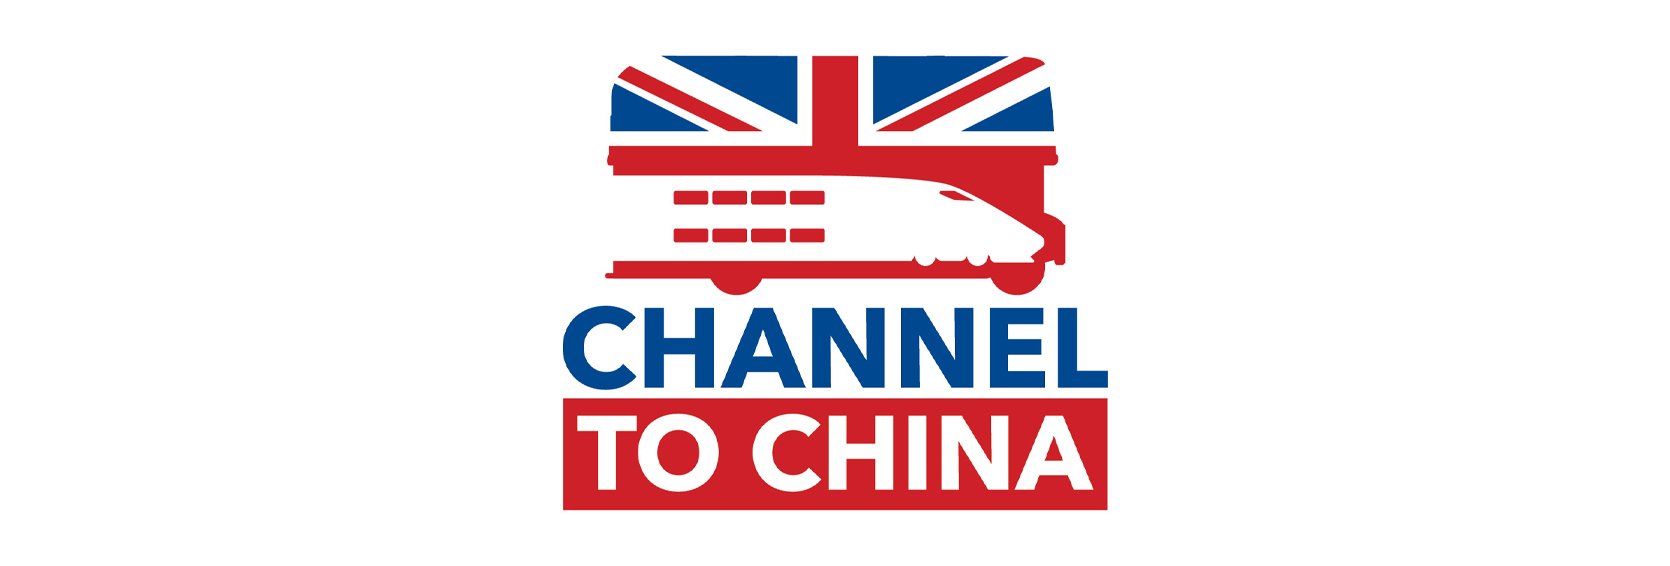 Channel-to-China-logo